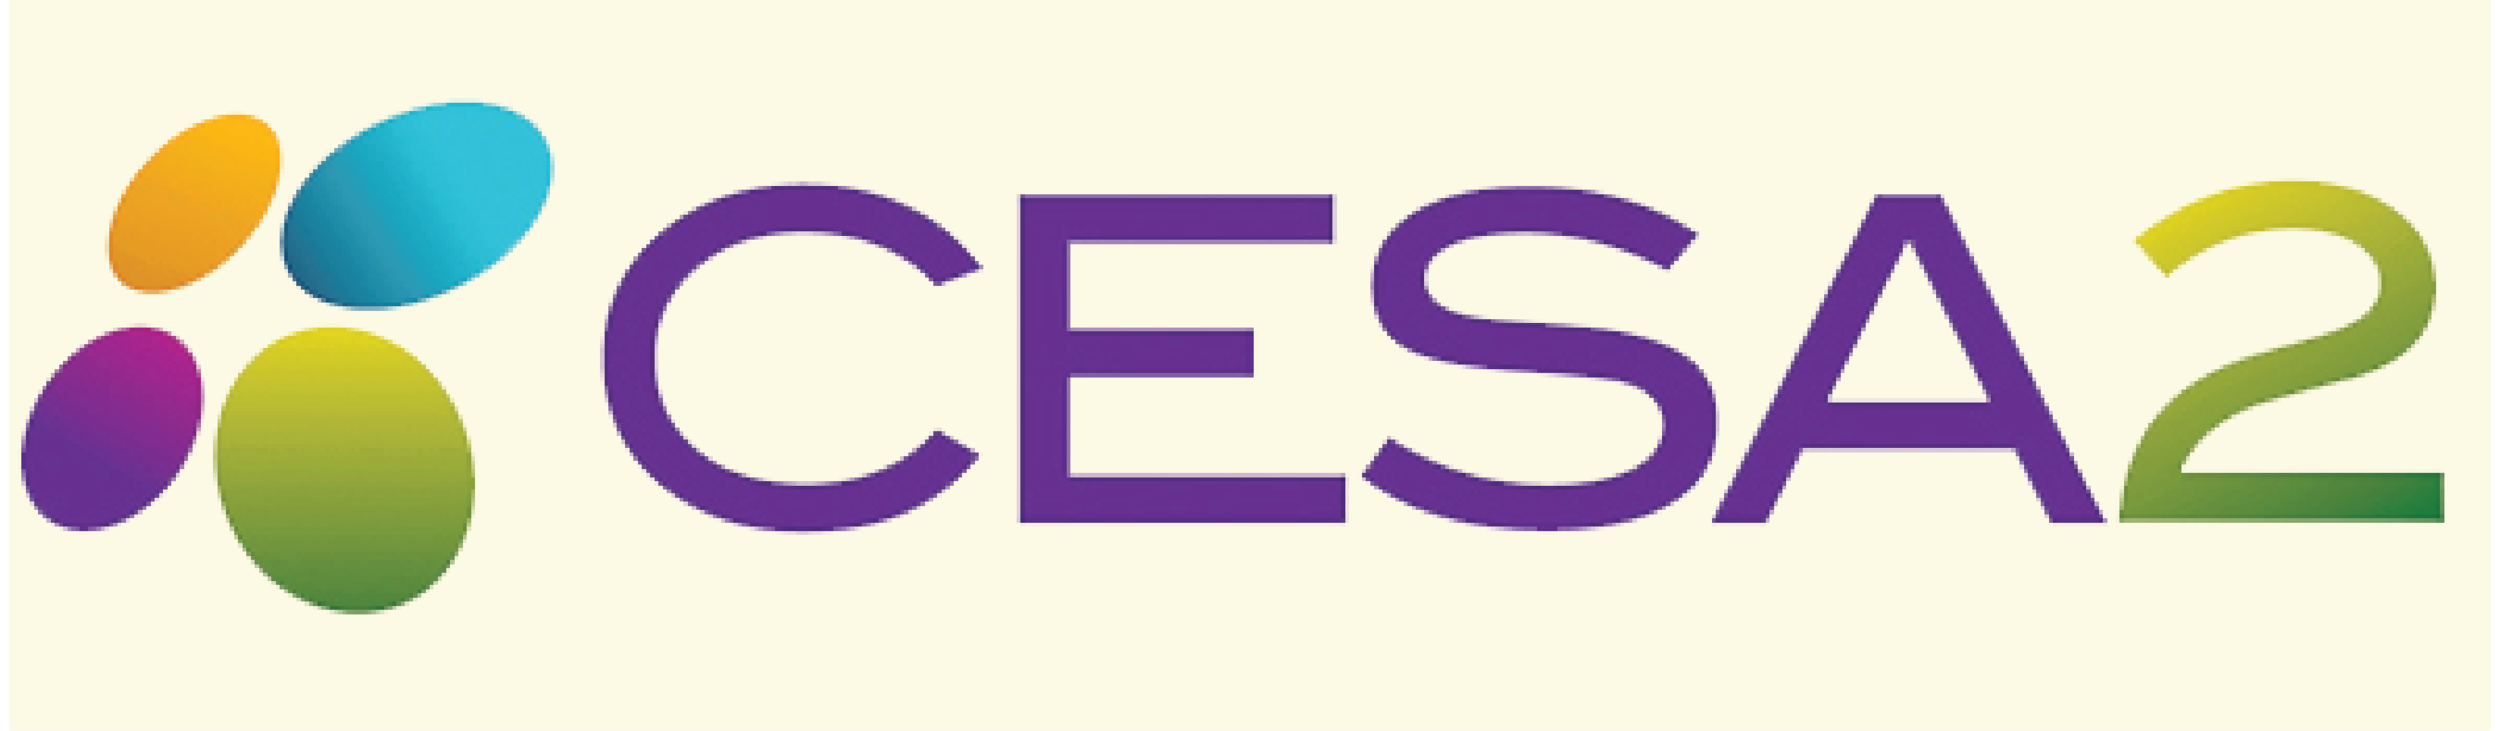 CESA 2 sized.png